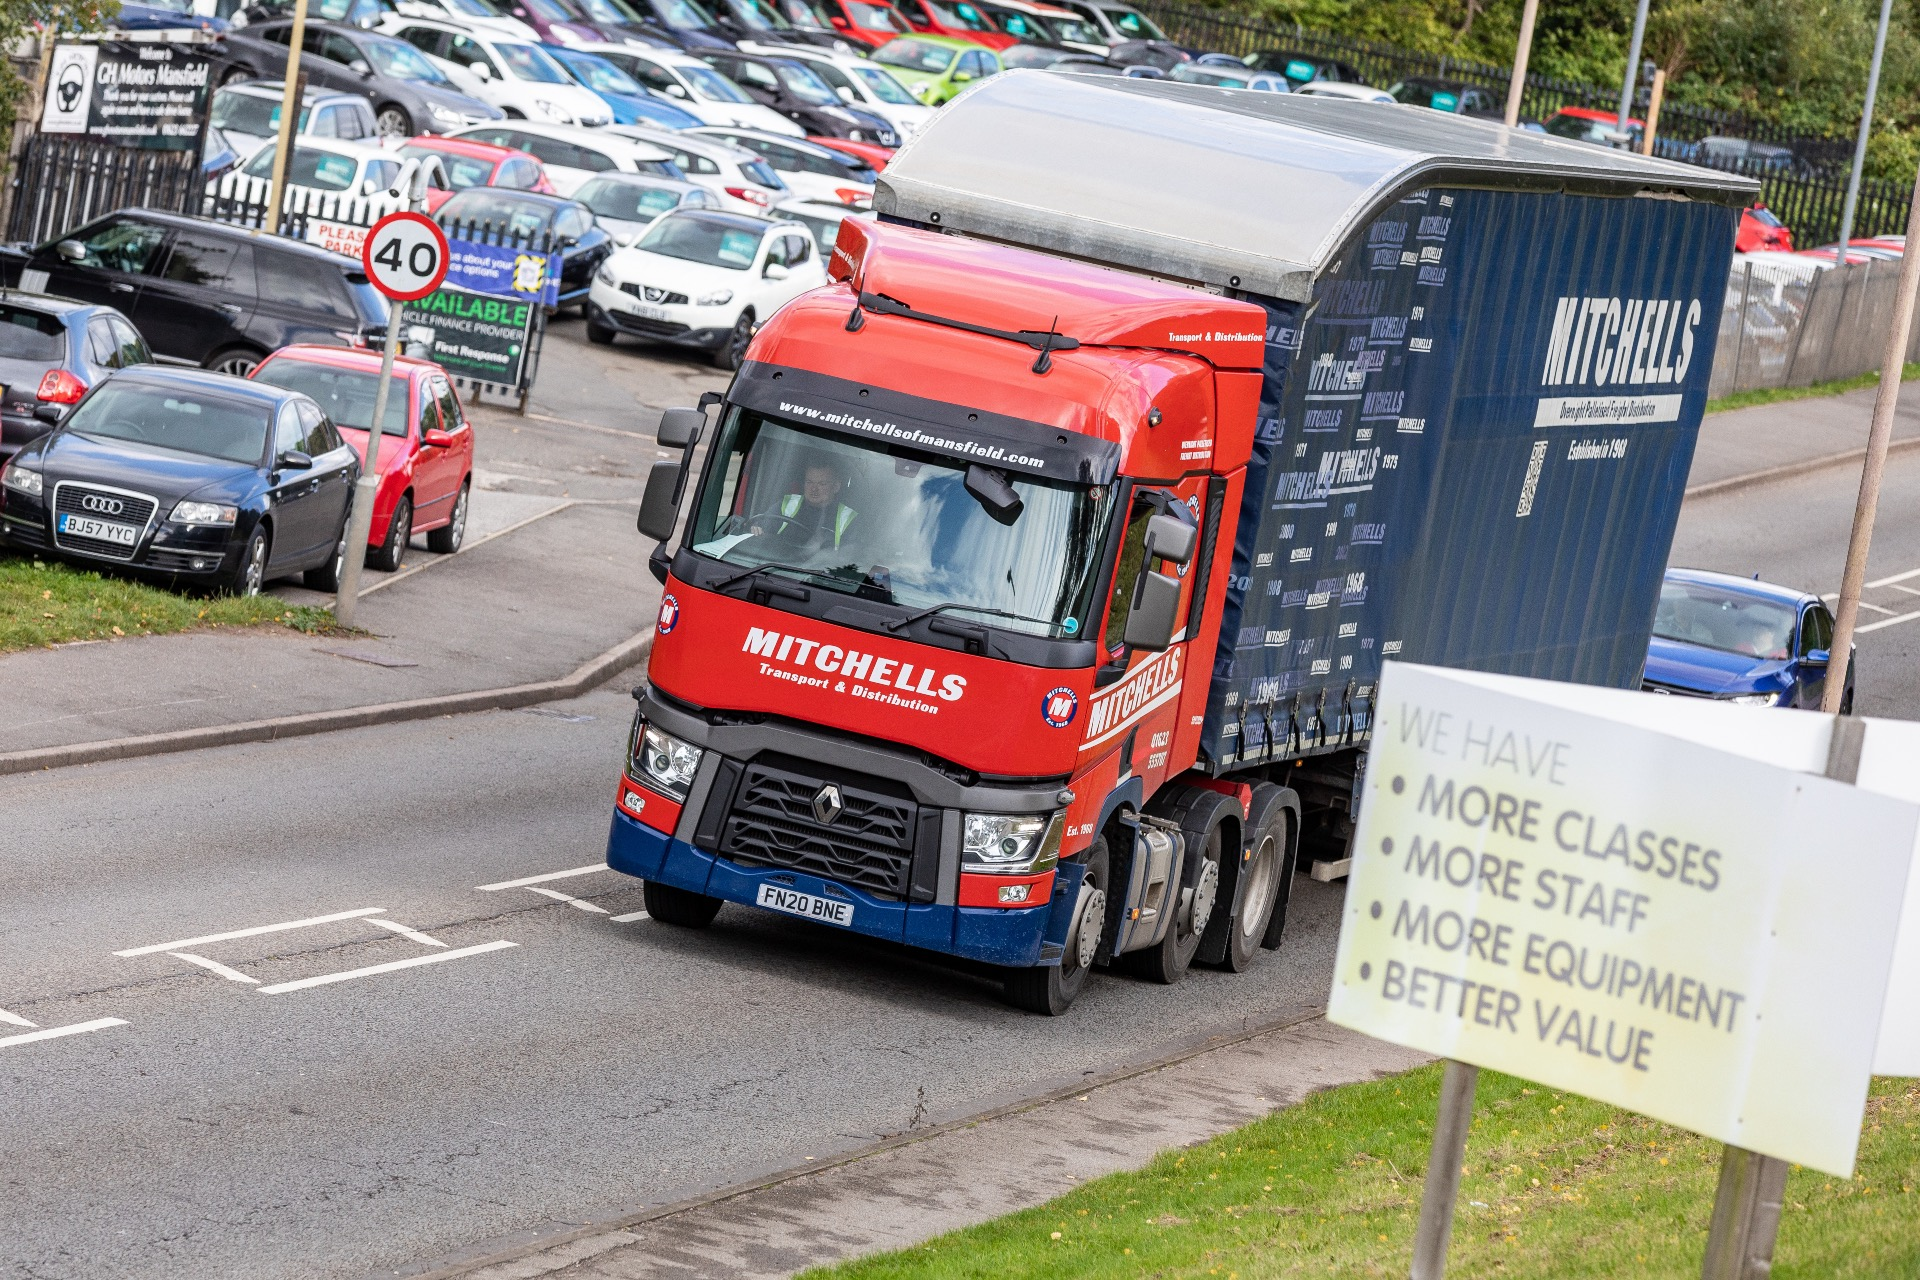 Mitchells lorry out for delivery